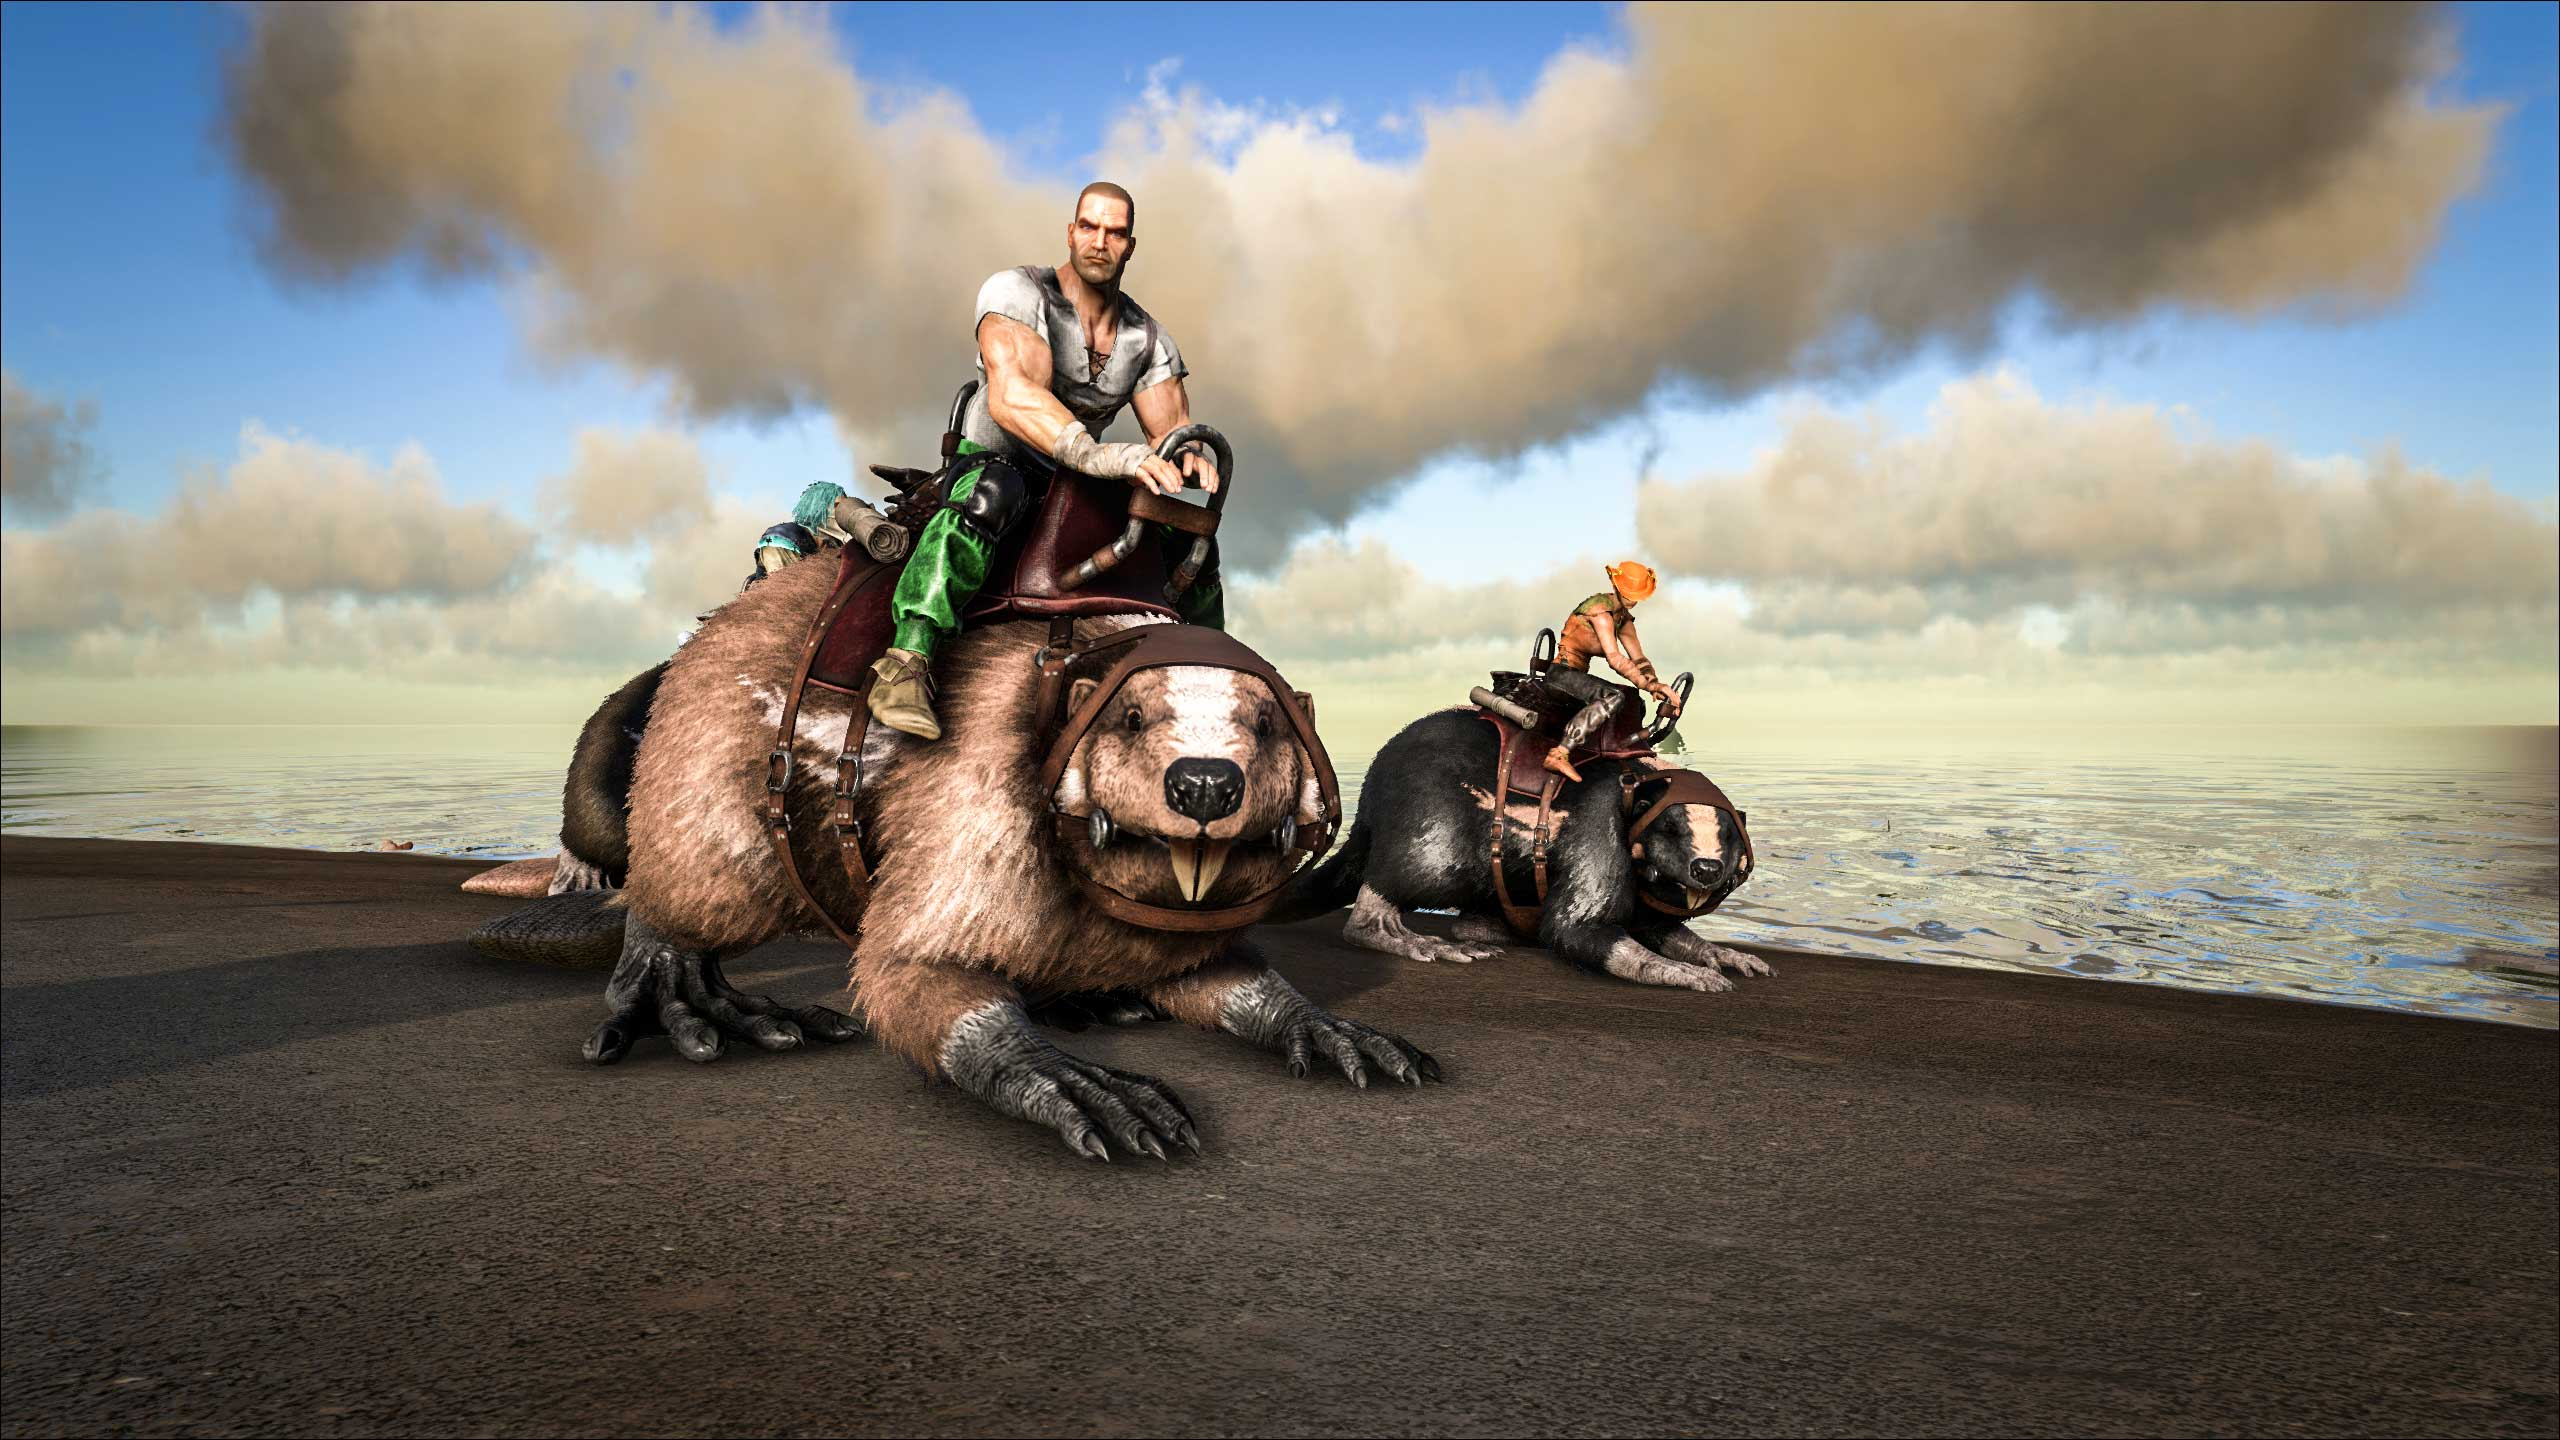 Full Release of Ark: Survival Evolved Pushed Back, Ragnorak DLC Also Delayed